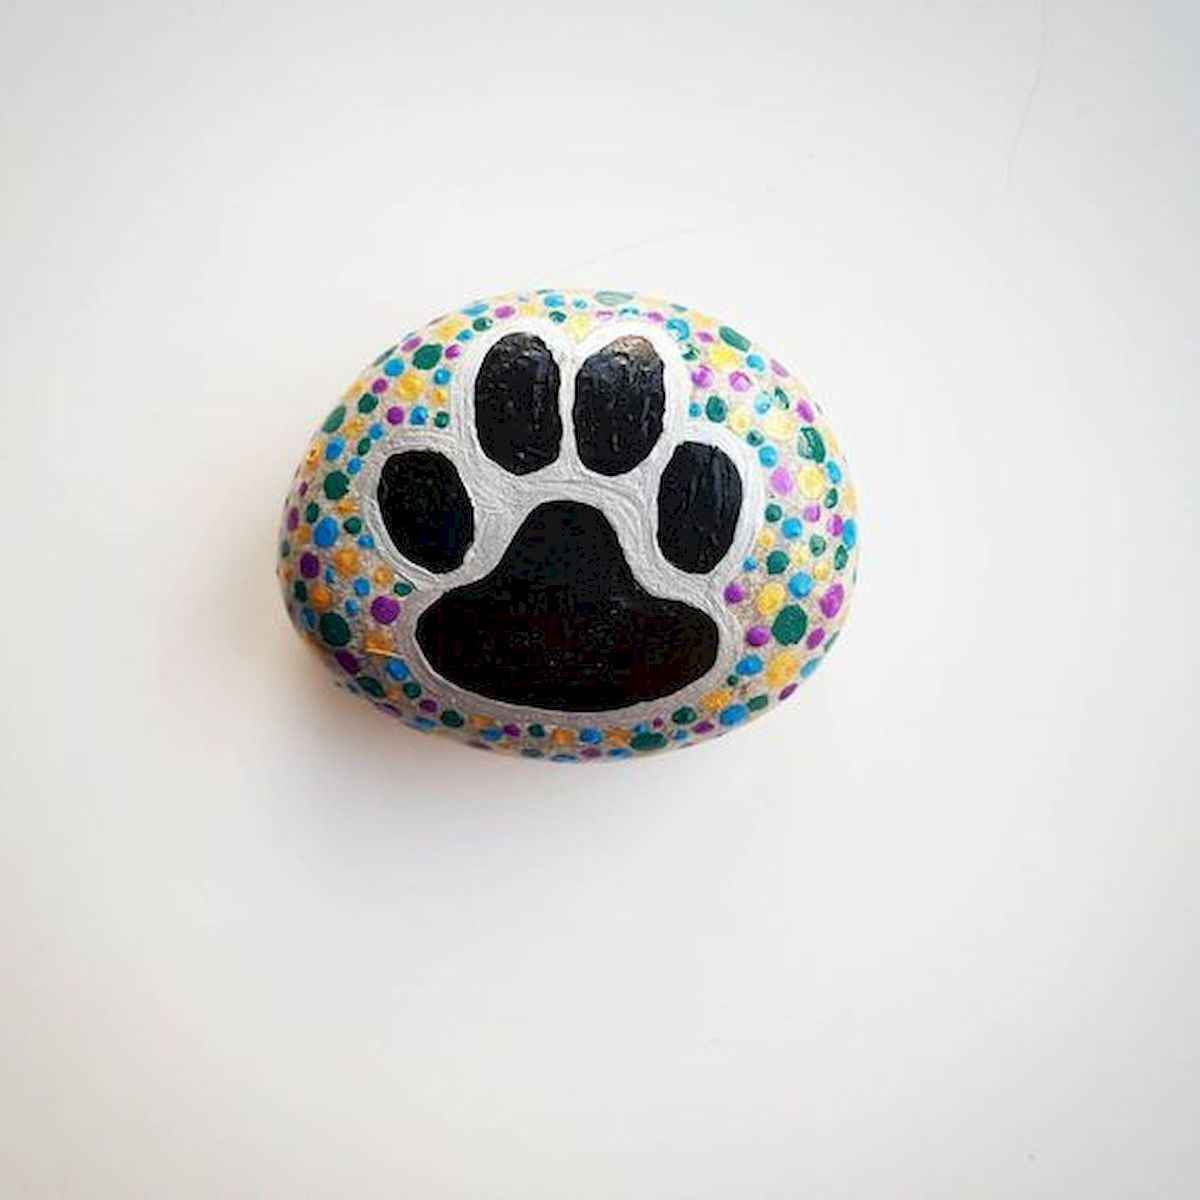 40 Awesome DIY Projects Painted Rocks Animals Dogs for Summer Ideas (27)